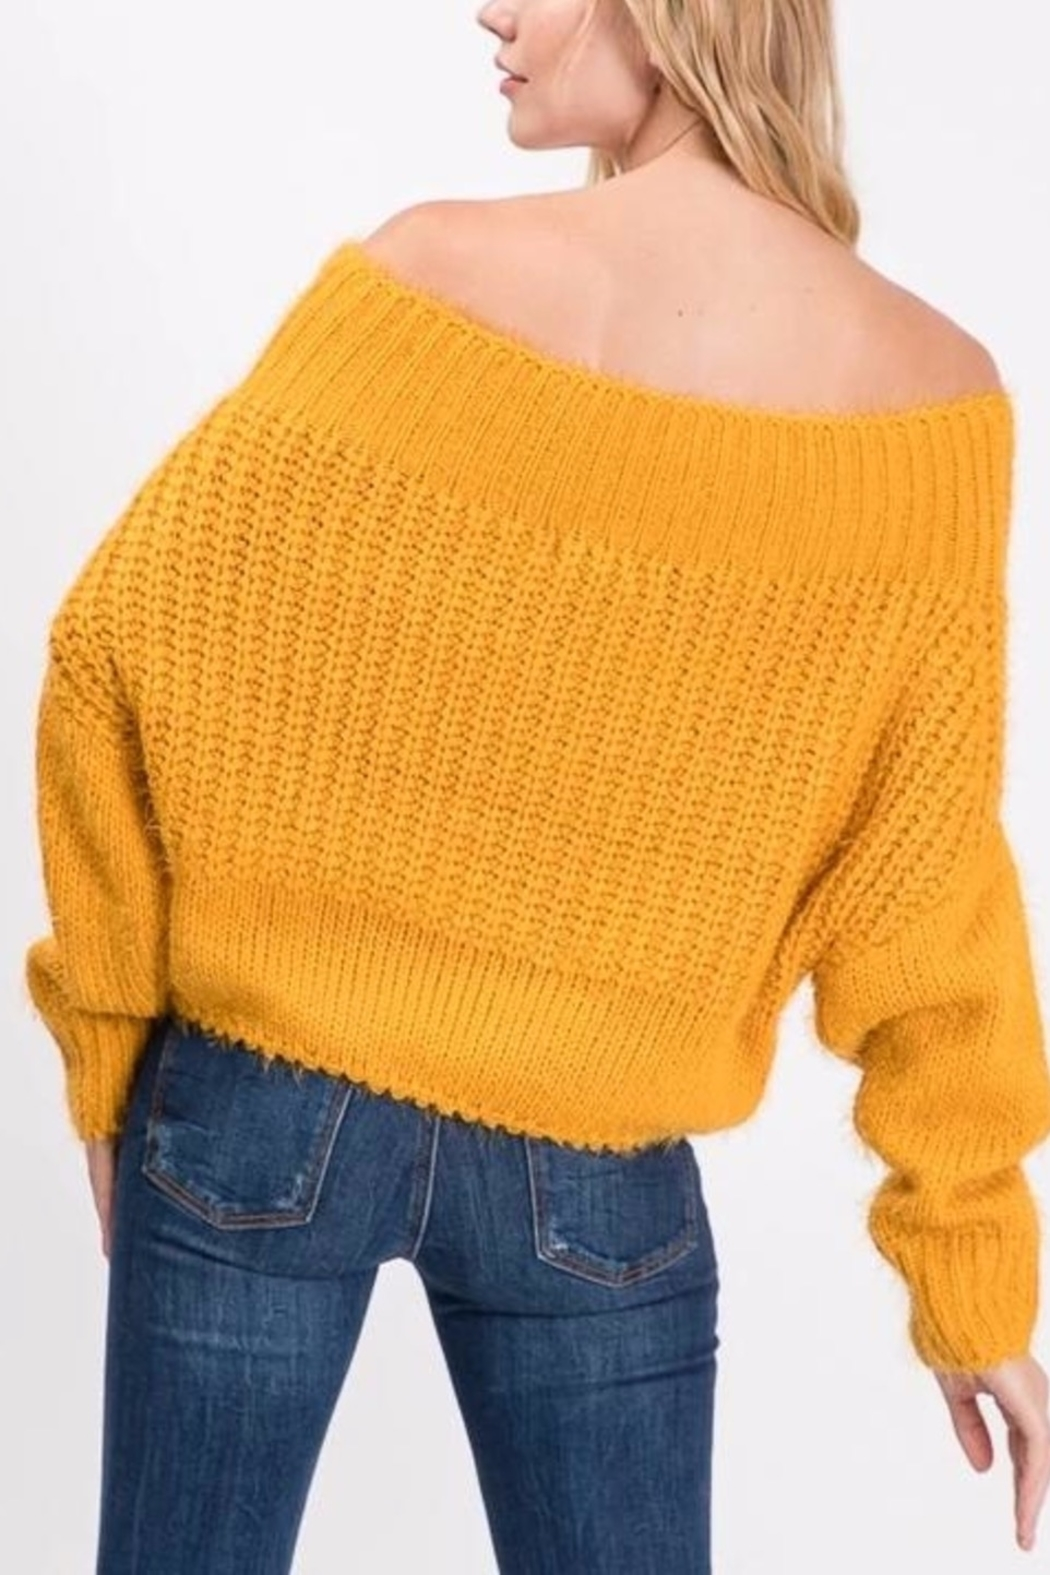 Kayla Armoire Seasonal Sass Sweater - Front Full Image